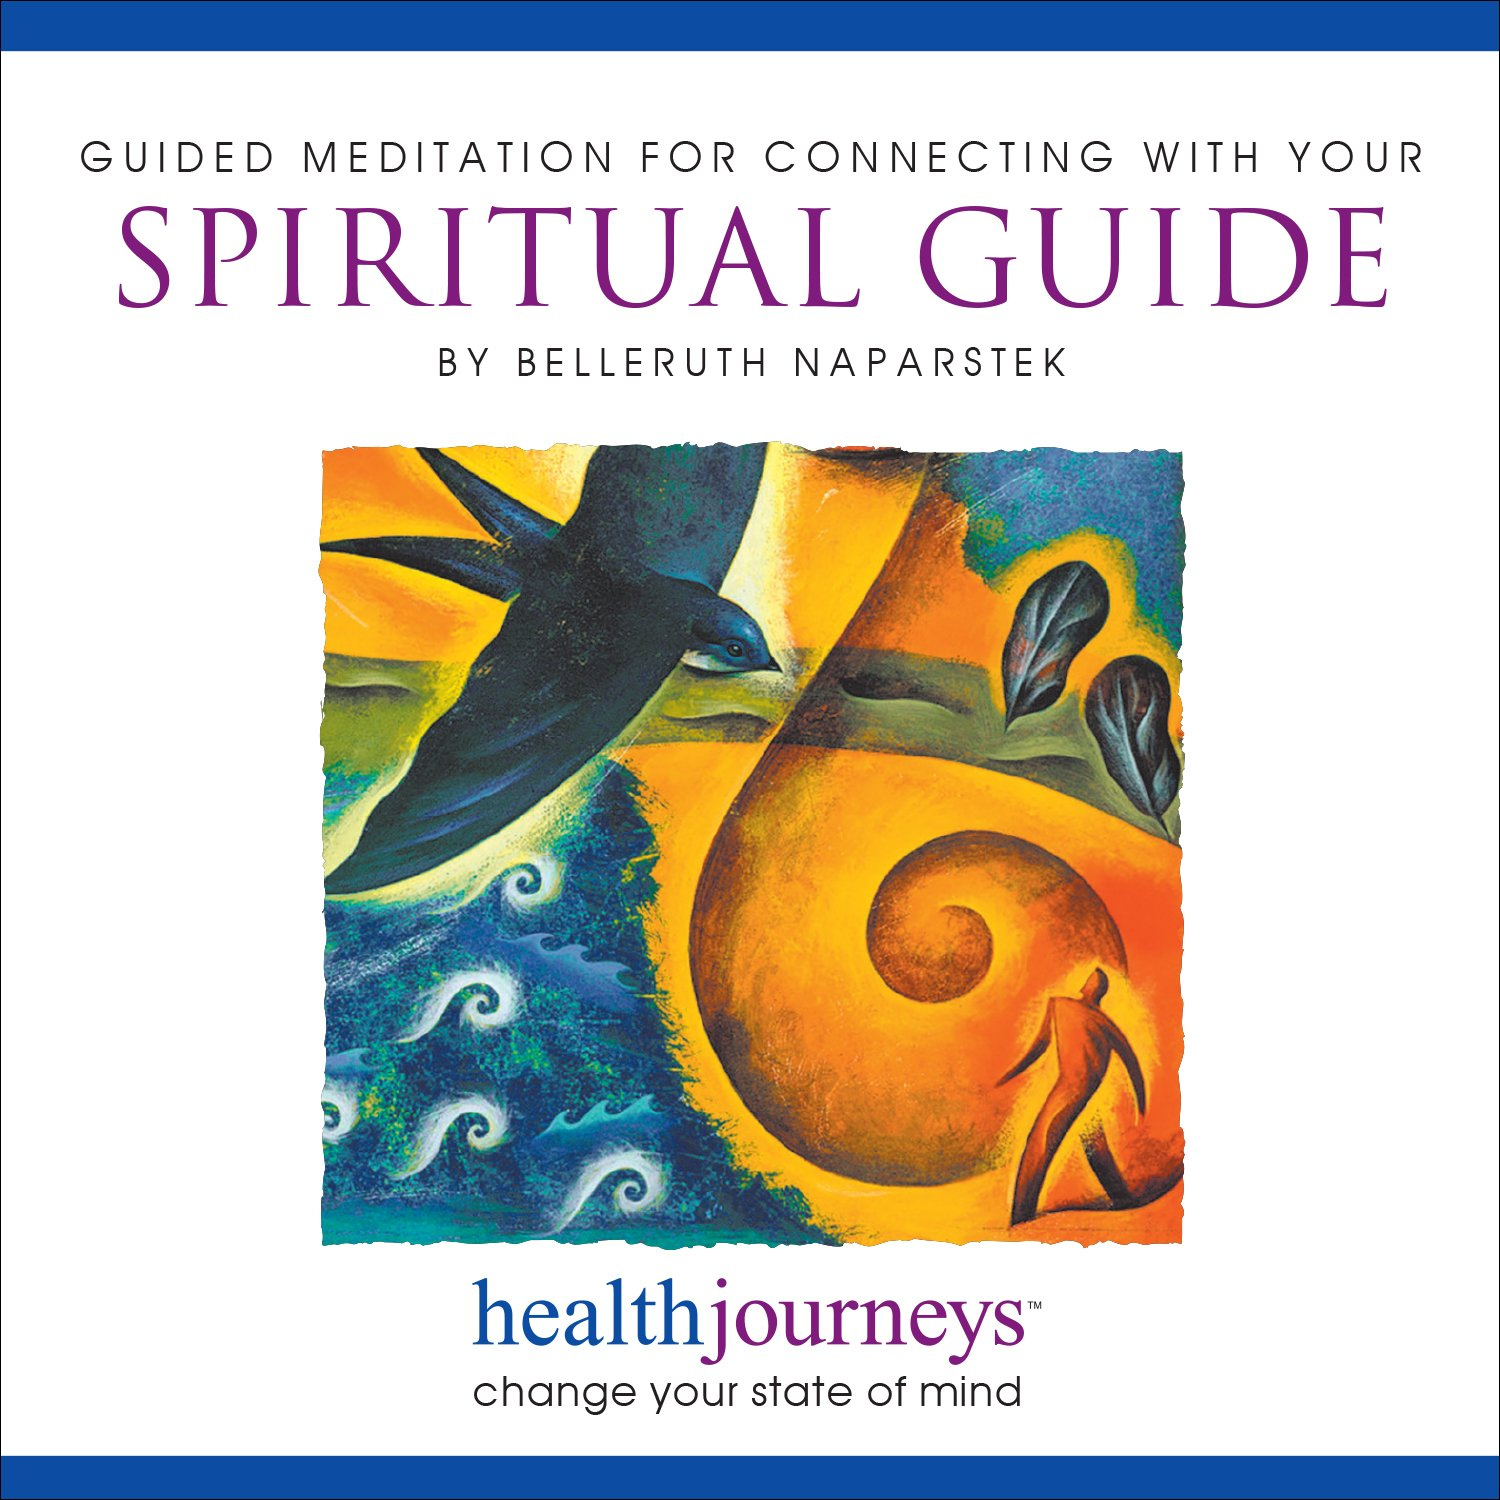 Meditation for Connecting with your Spiritual Guide, Find Intuitive Understanding and Spritual Guidance, Guided Meditation and Imagery with Healing Words and Soothing Music by Belleruth Naparstek